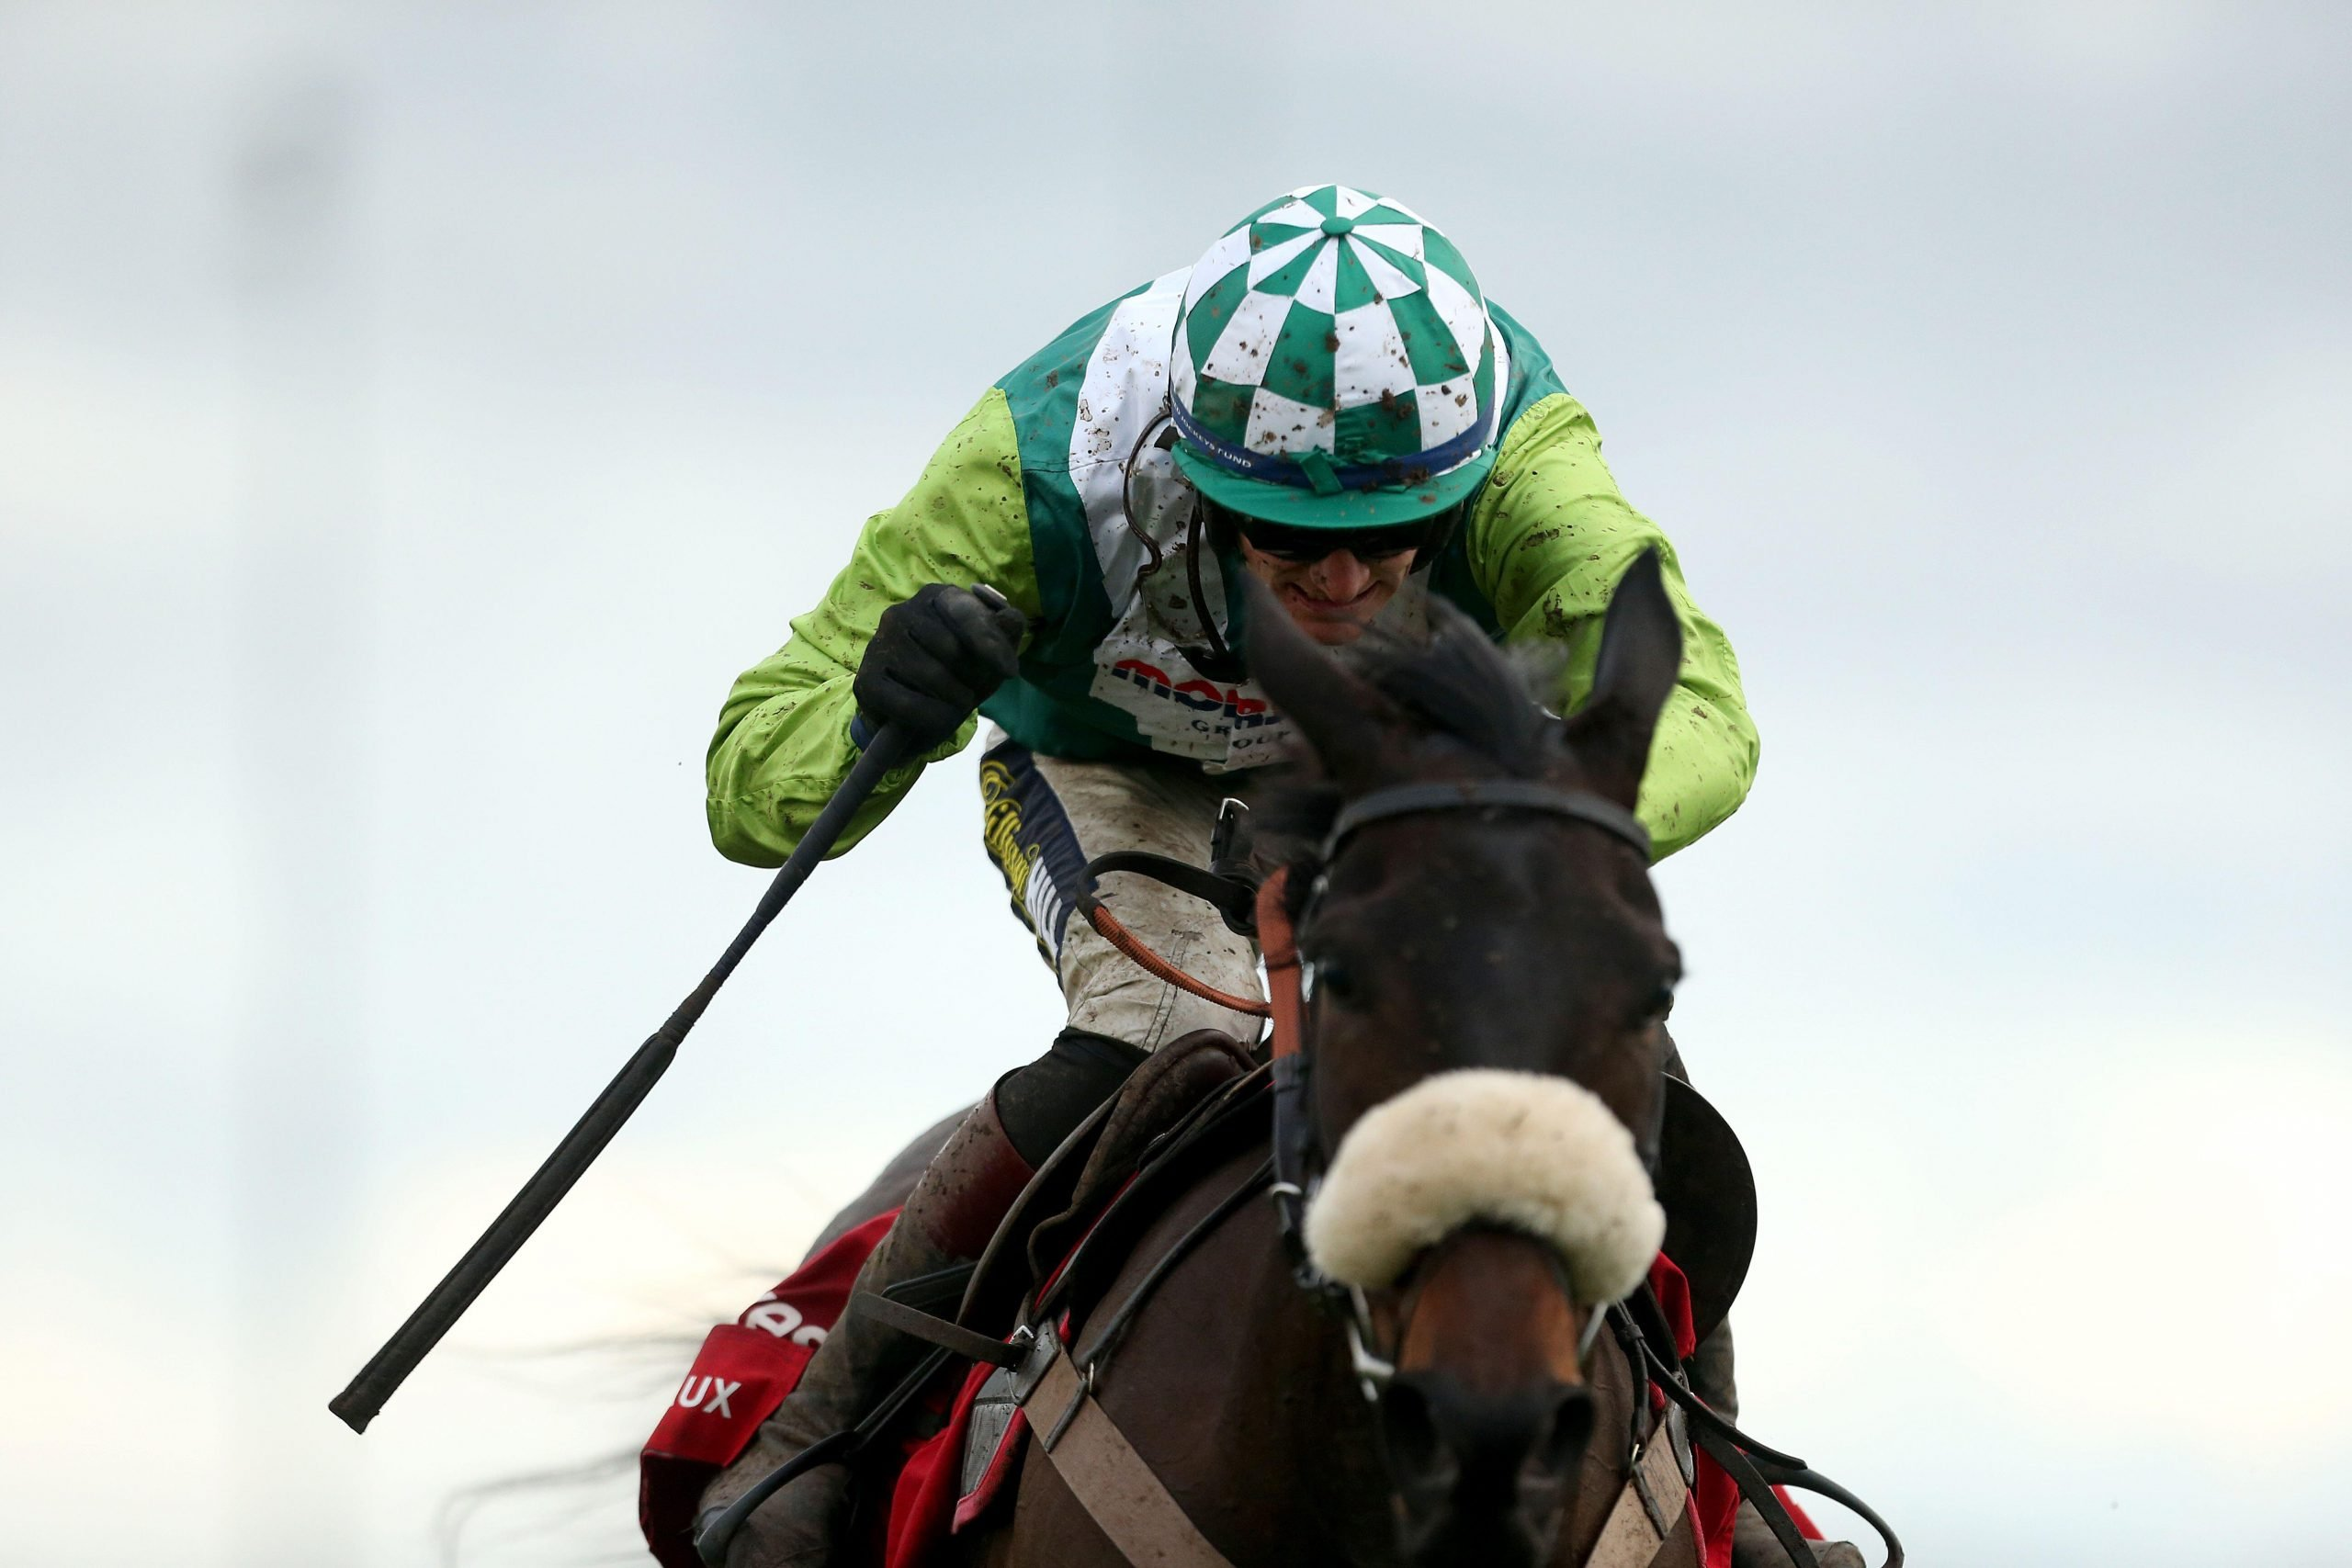 Clan Des Obeaux ridden by jockey Sam Twiston-Davies goes onto win the Ladbrokes King George VI Chase during day one of the Winter Festival at Kempton Park Racecourse.